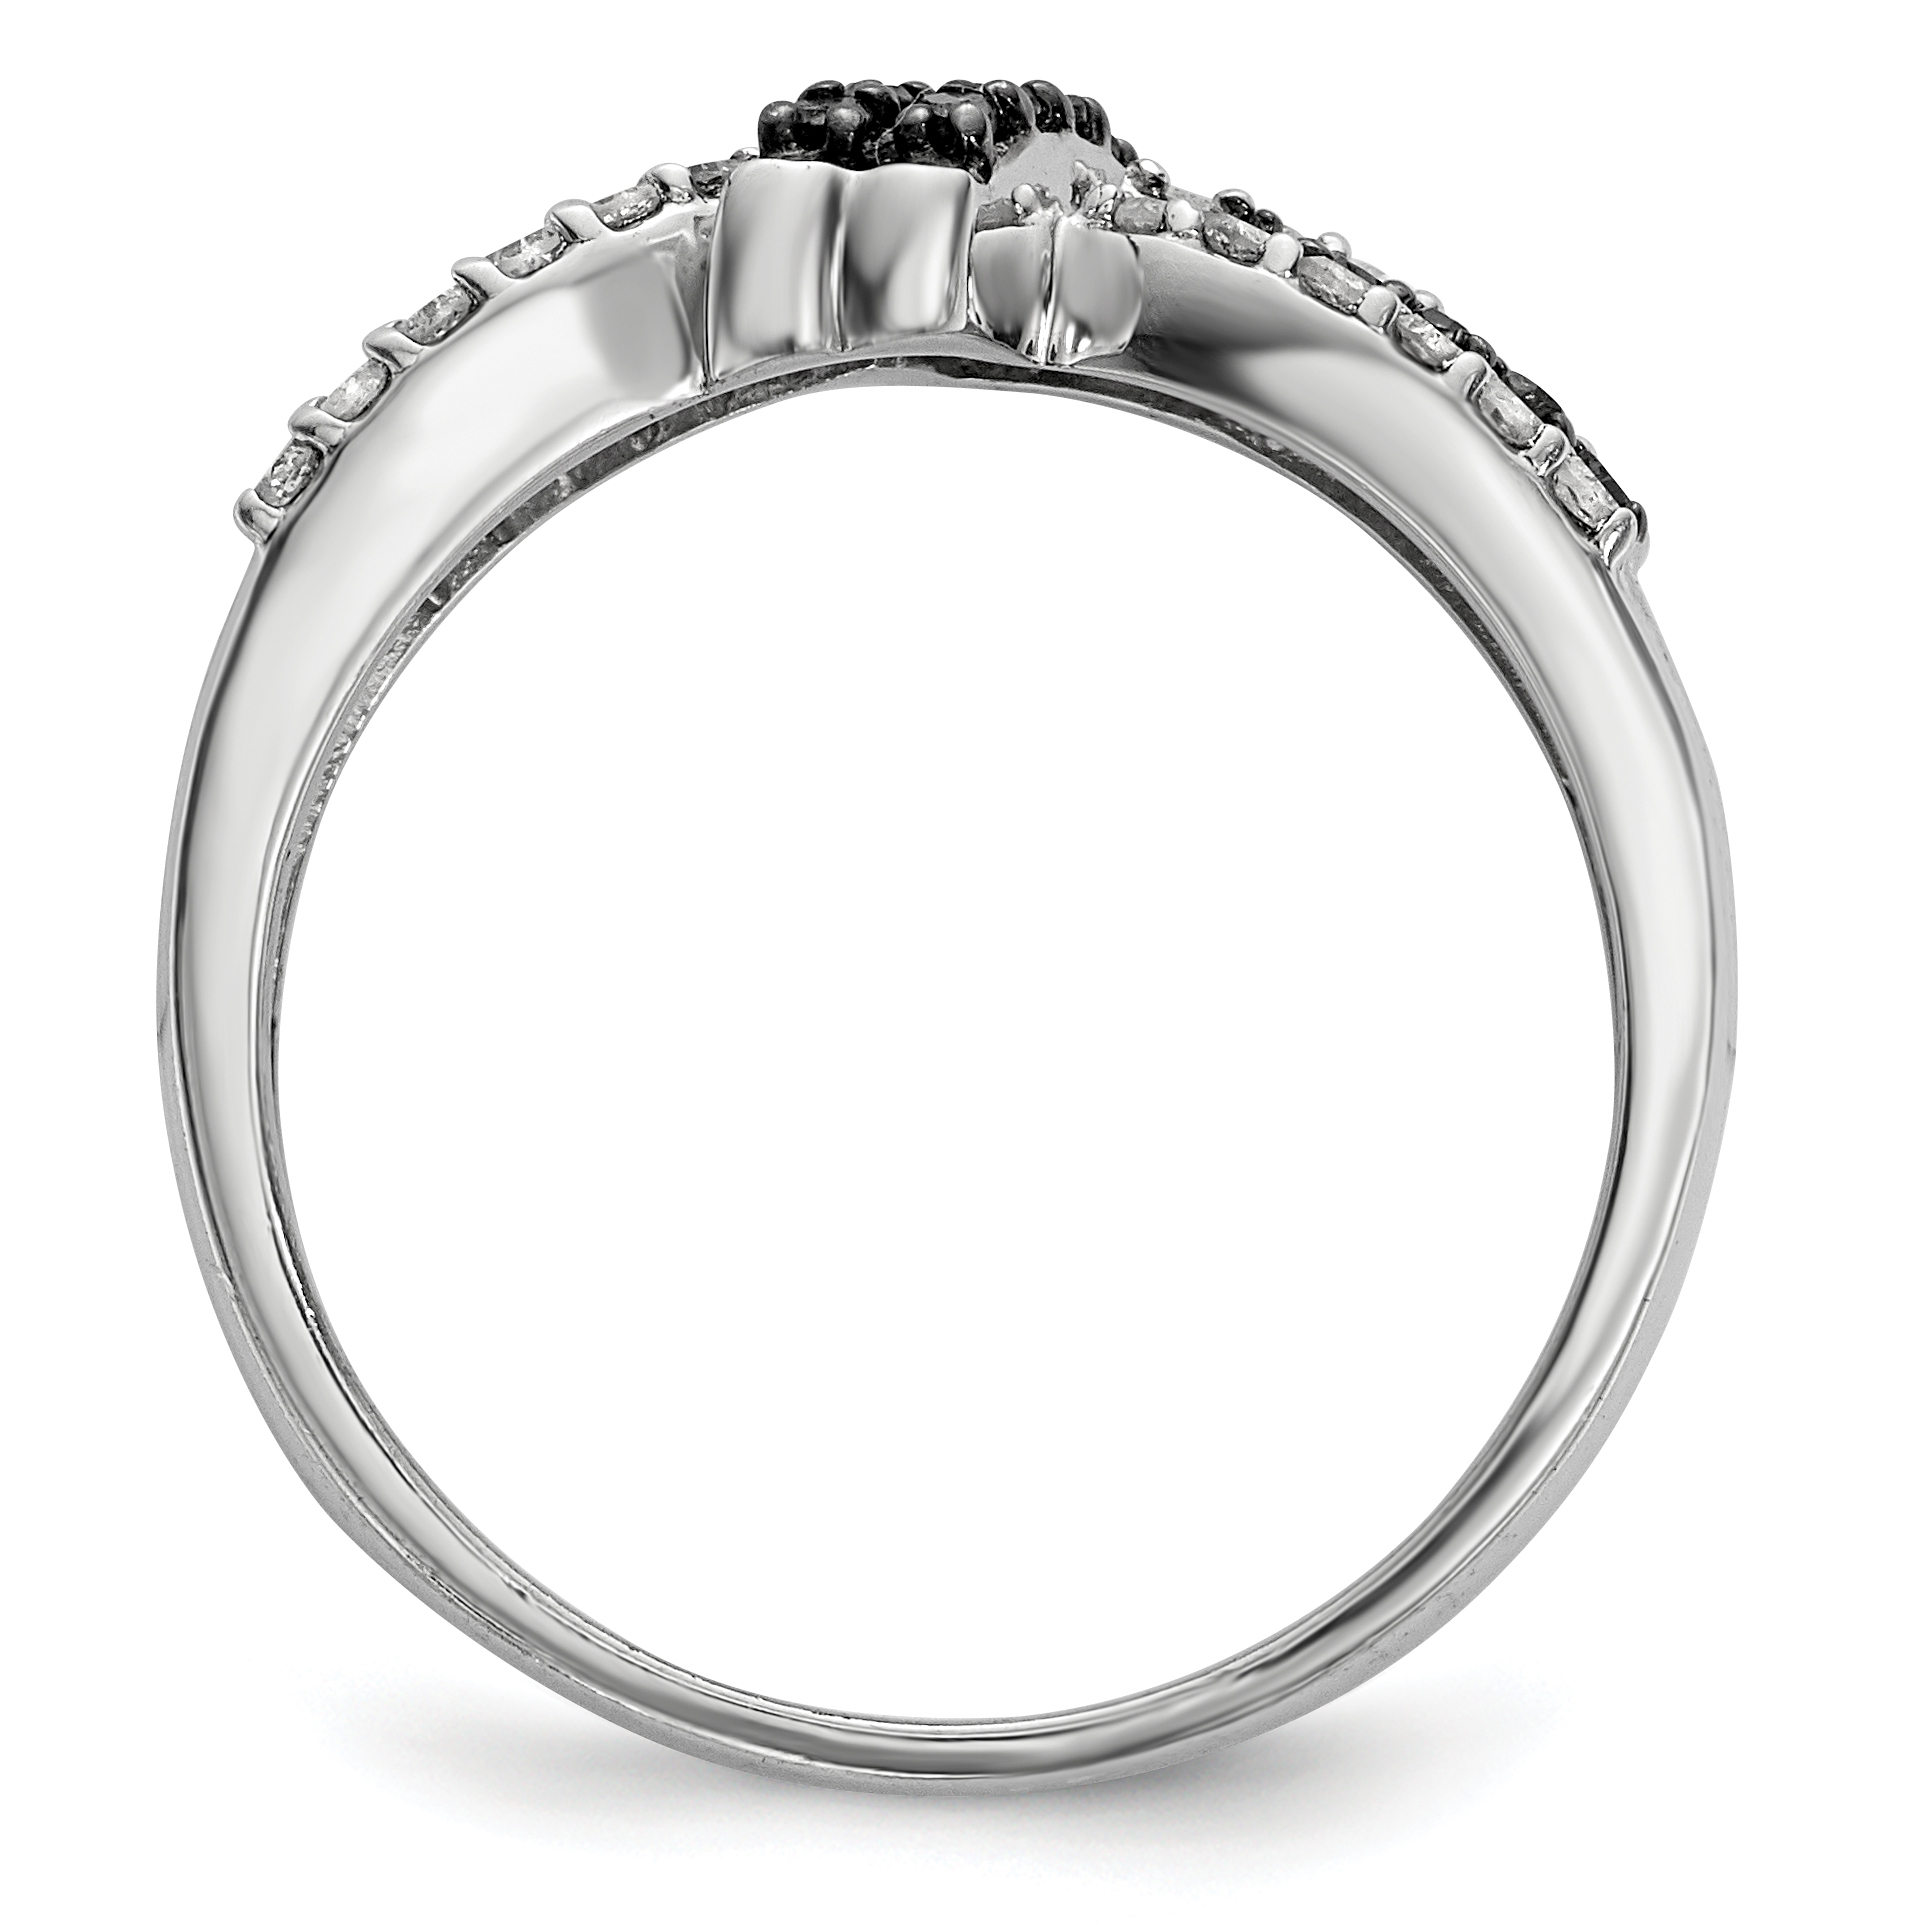 925 Sterling Silver Black White Diamond Band Ring Size 6.00 Fine Jewelry Gifts For Women For Her - image 1 de 6